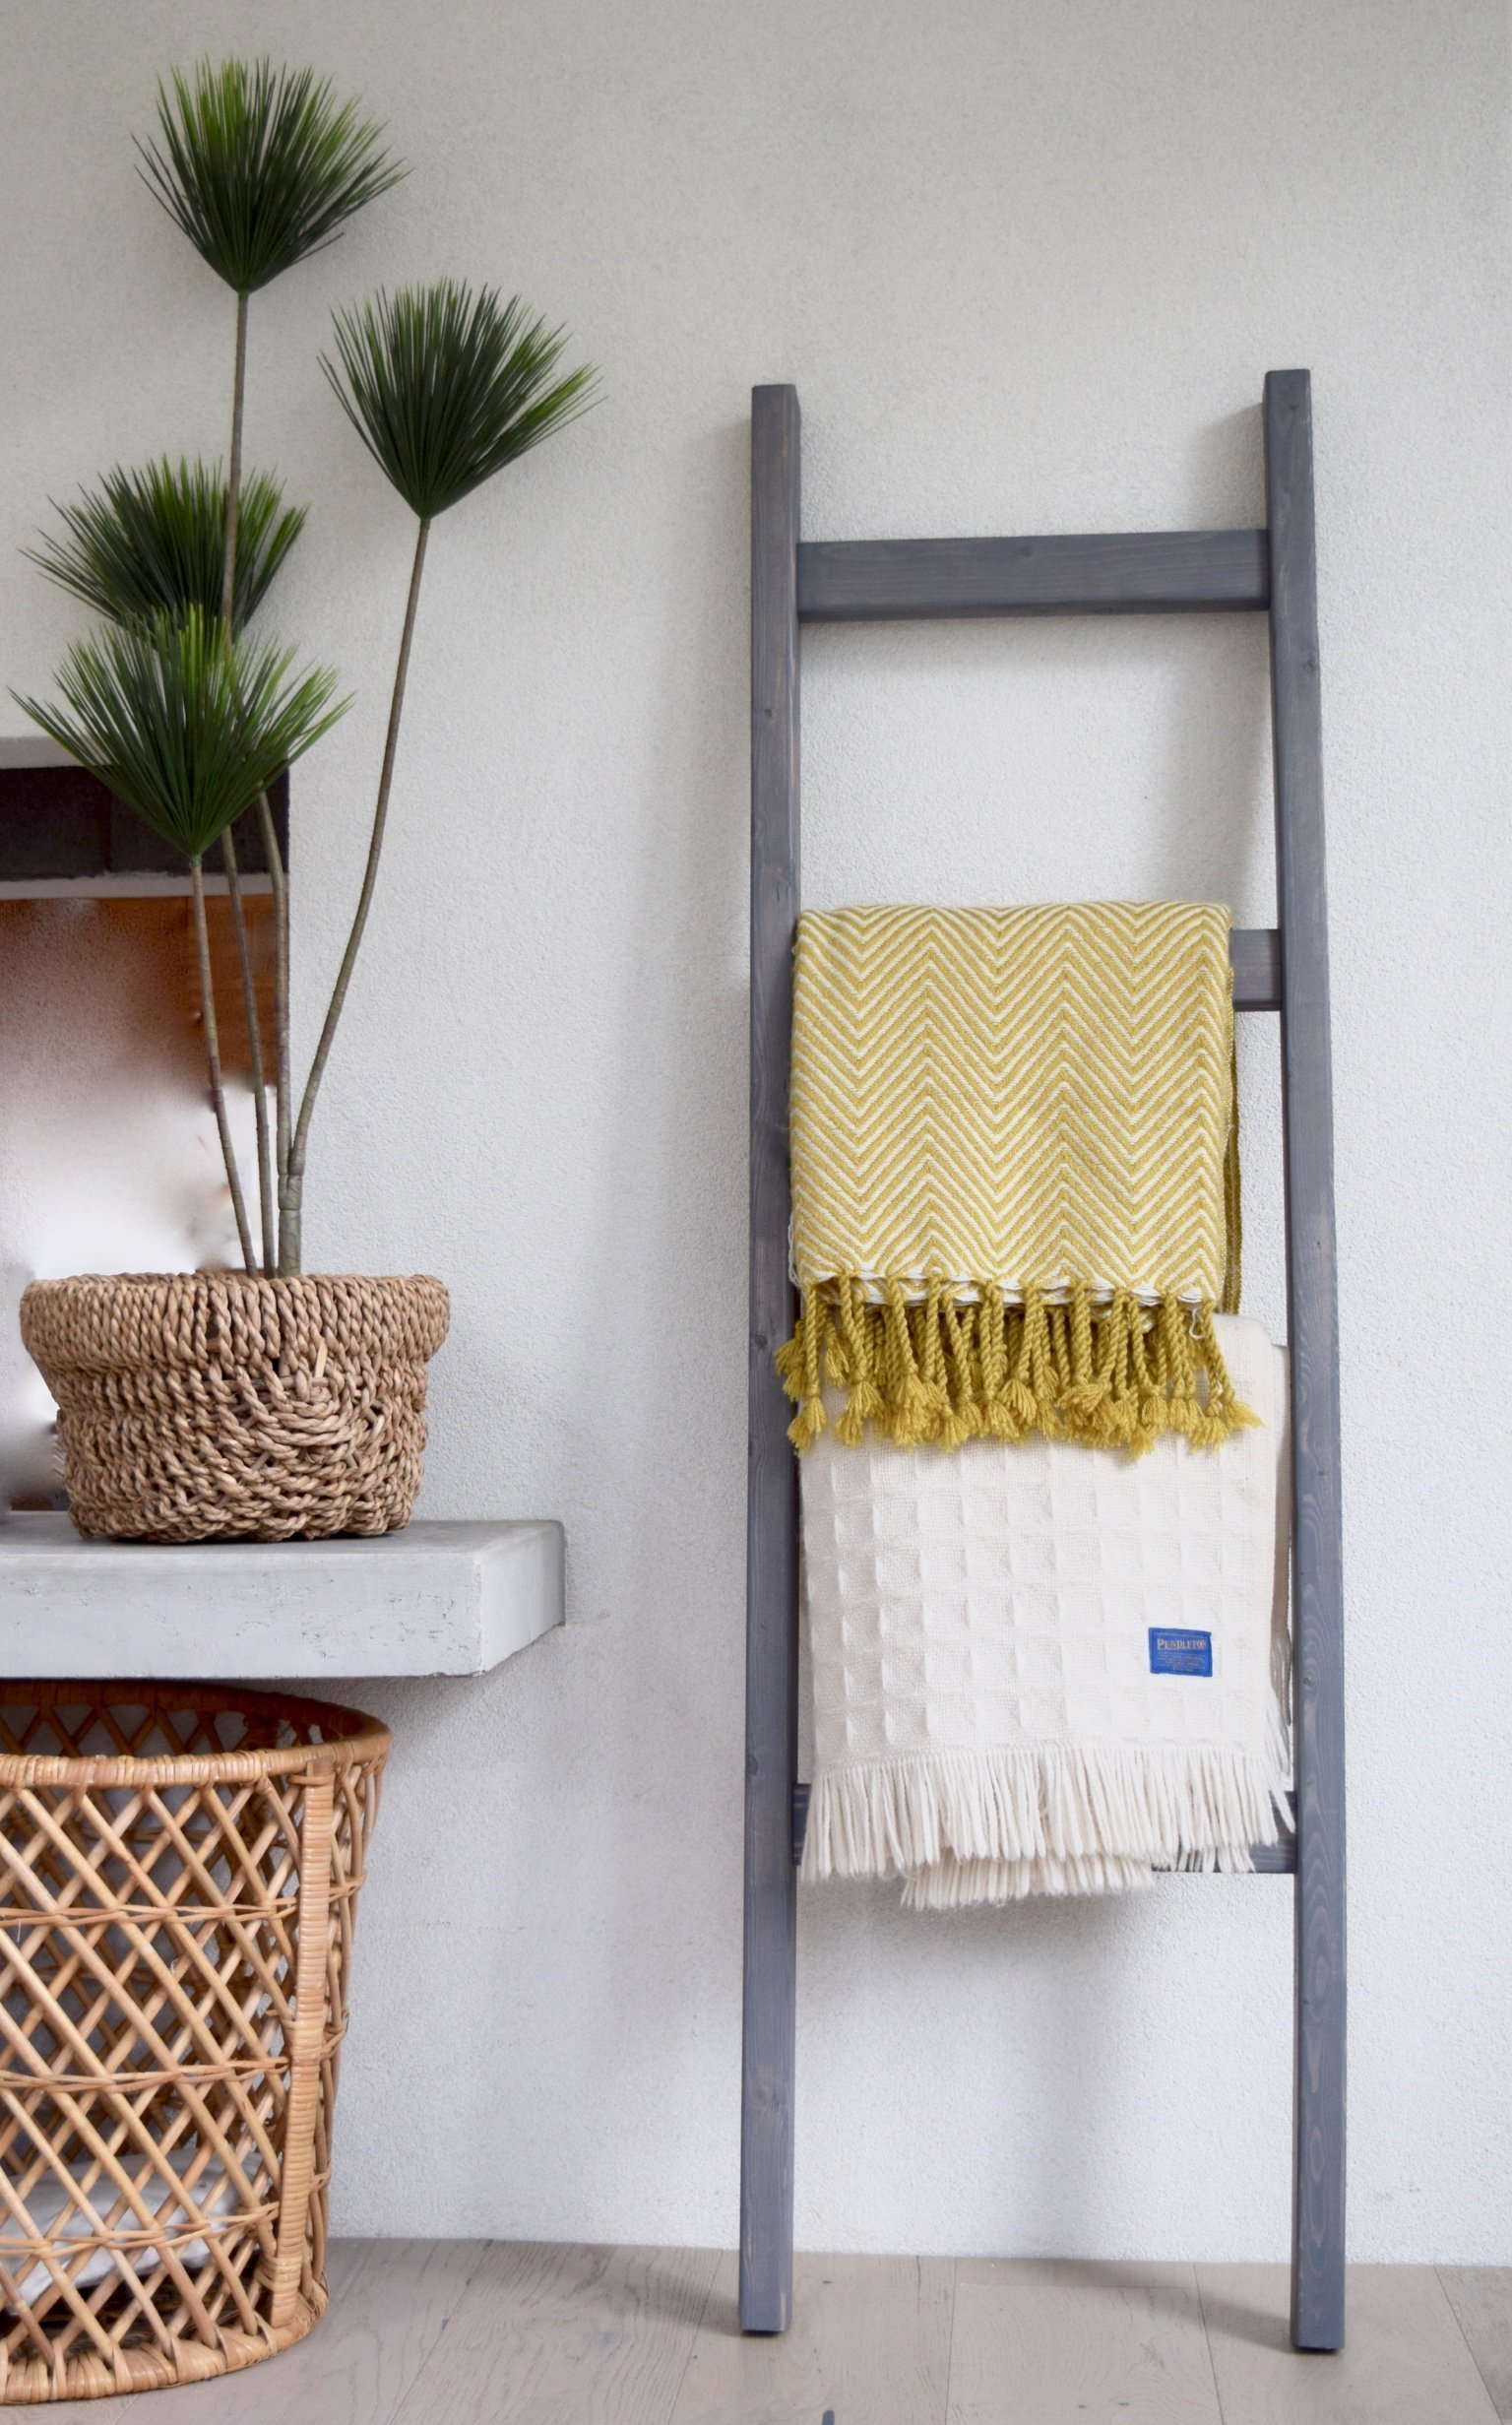 Bits + Bushel, 5 Ft Wooden Decorative Ladder | 4 Rung, Stained Weathered Gray | For Home, Stores, Quilts, Bathroom Towels, Blankets & More